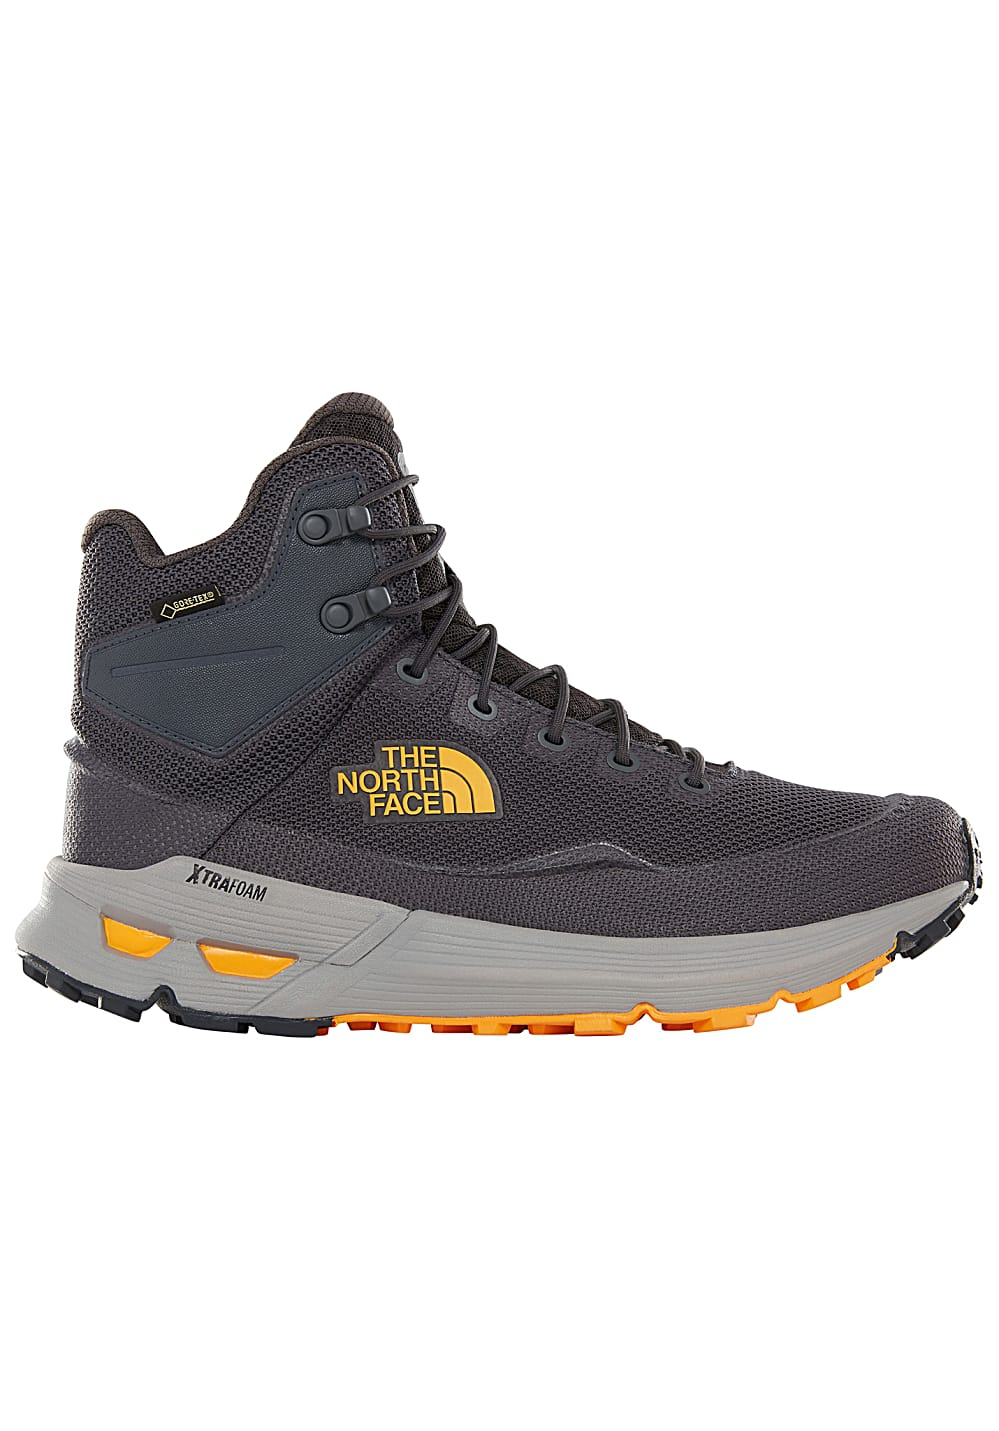 f2c266b80 THE NORTH FACE Safien Mid GTX - Trekking Shoes for Men - Grey